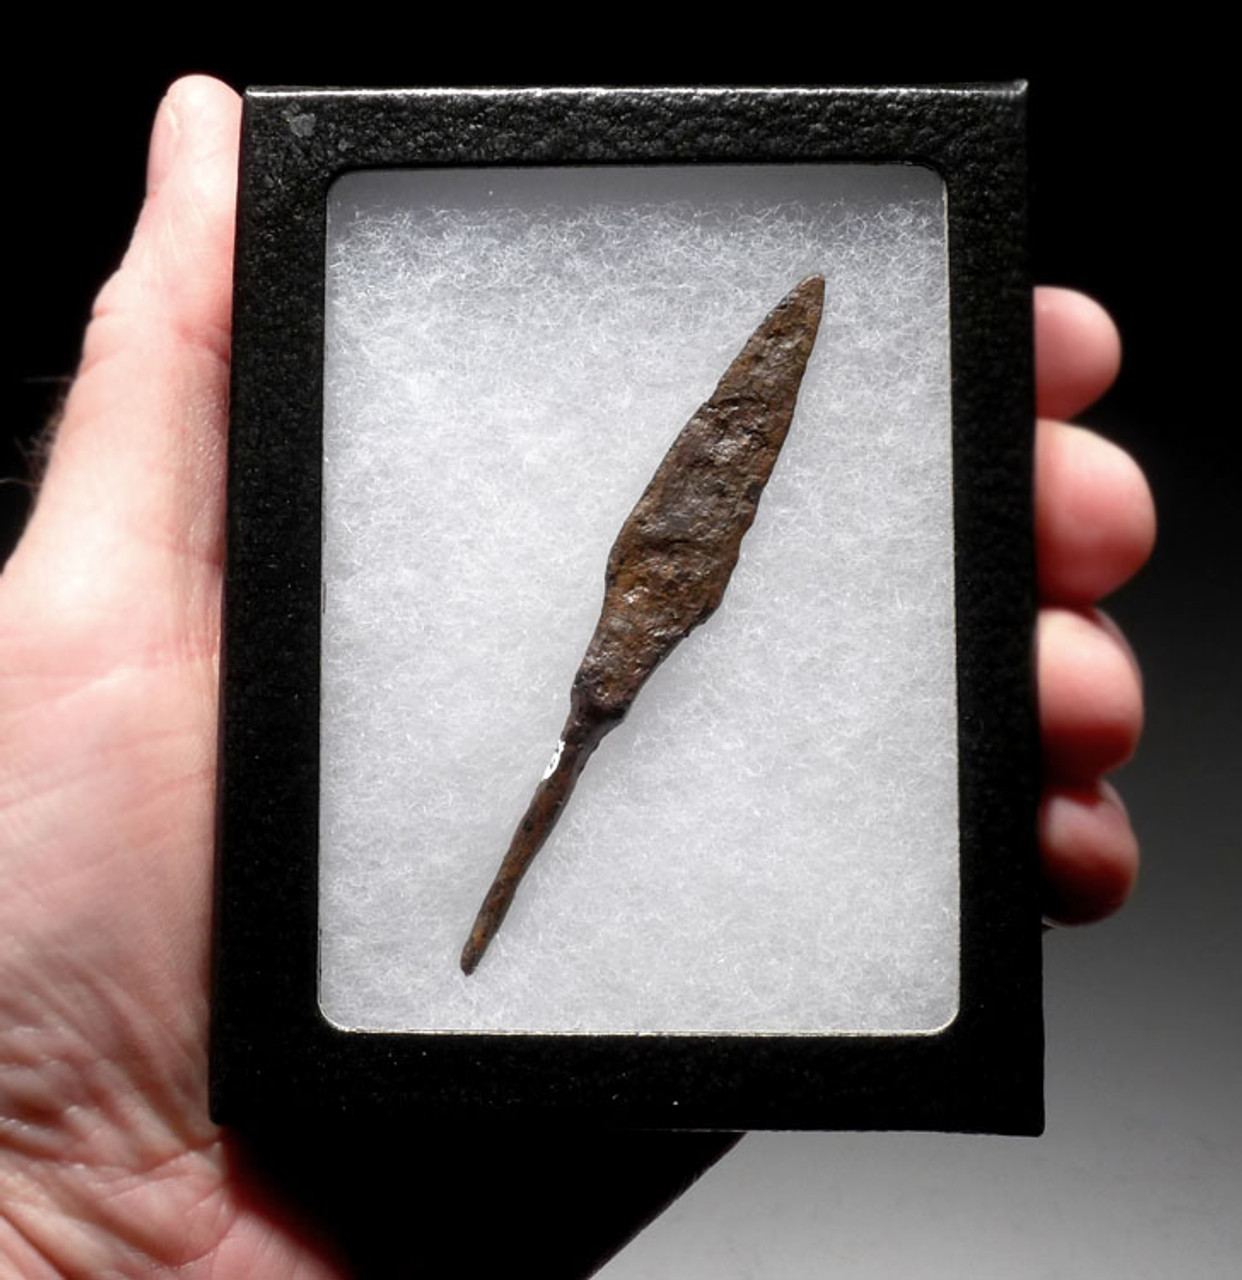 R139 - BYZANTINE ROMAN IRON ARROWHEAD FROM A MOUNTED CAVARLY HORSE ARCHER